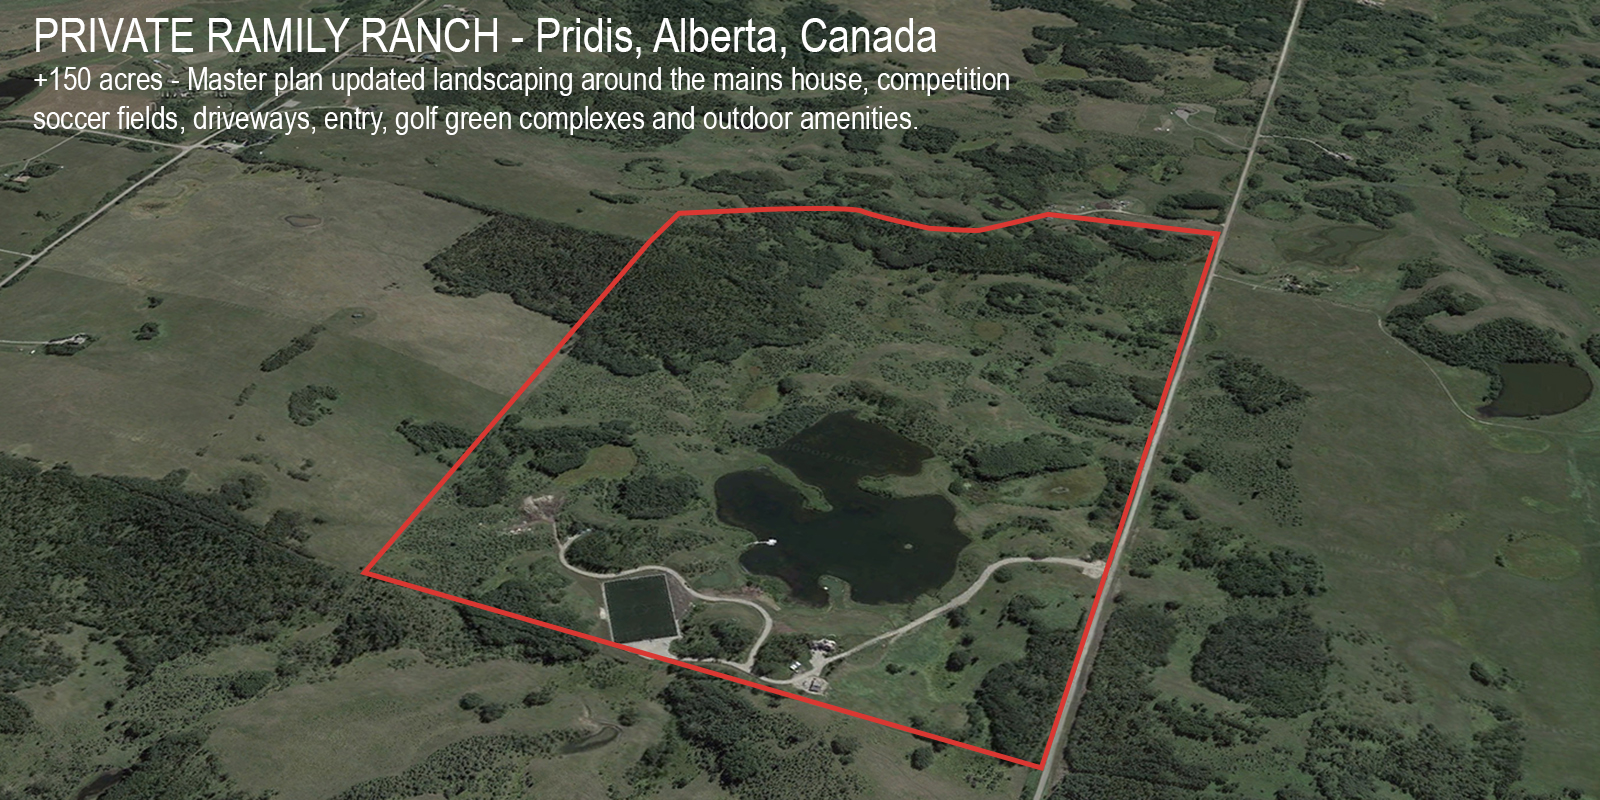 private family ranch - pridis, canada - aerial image.jpg